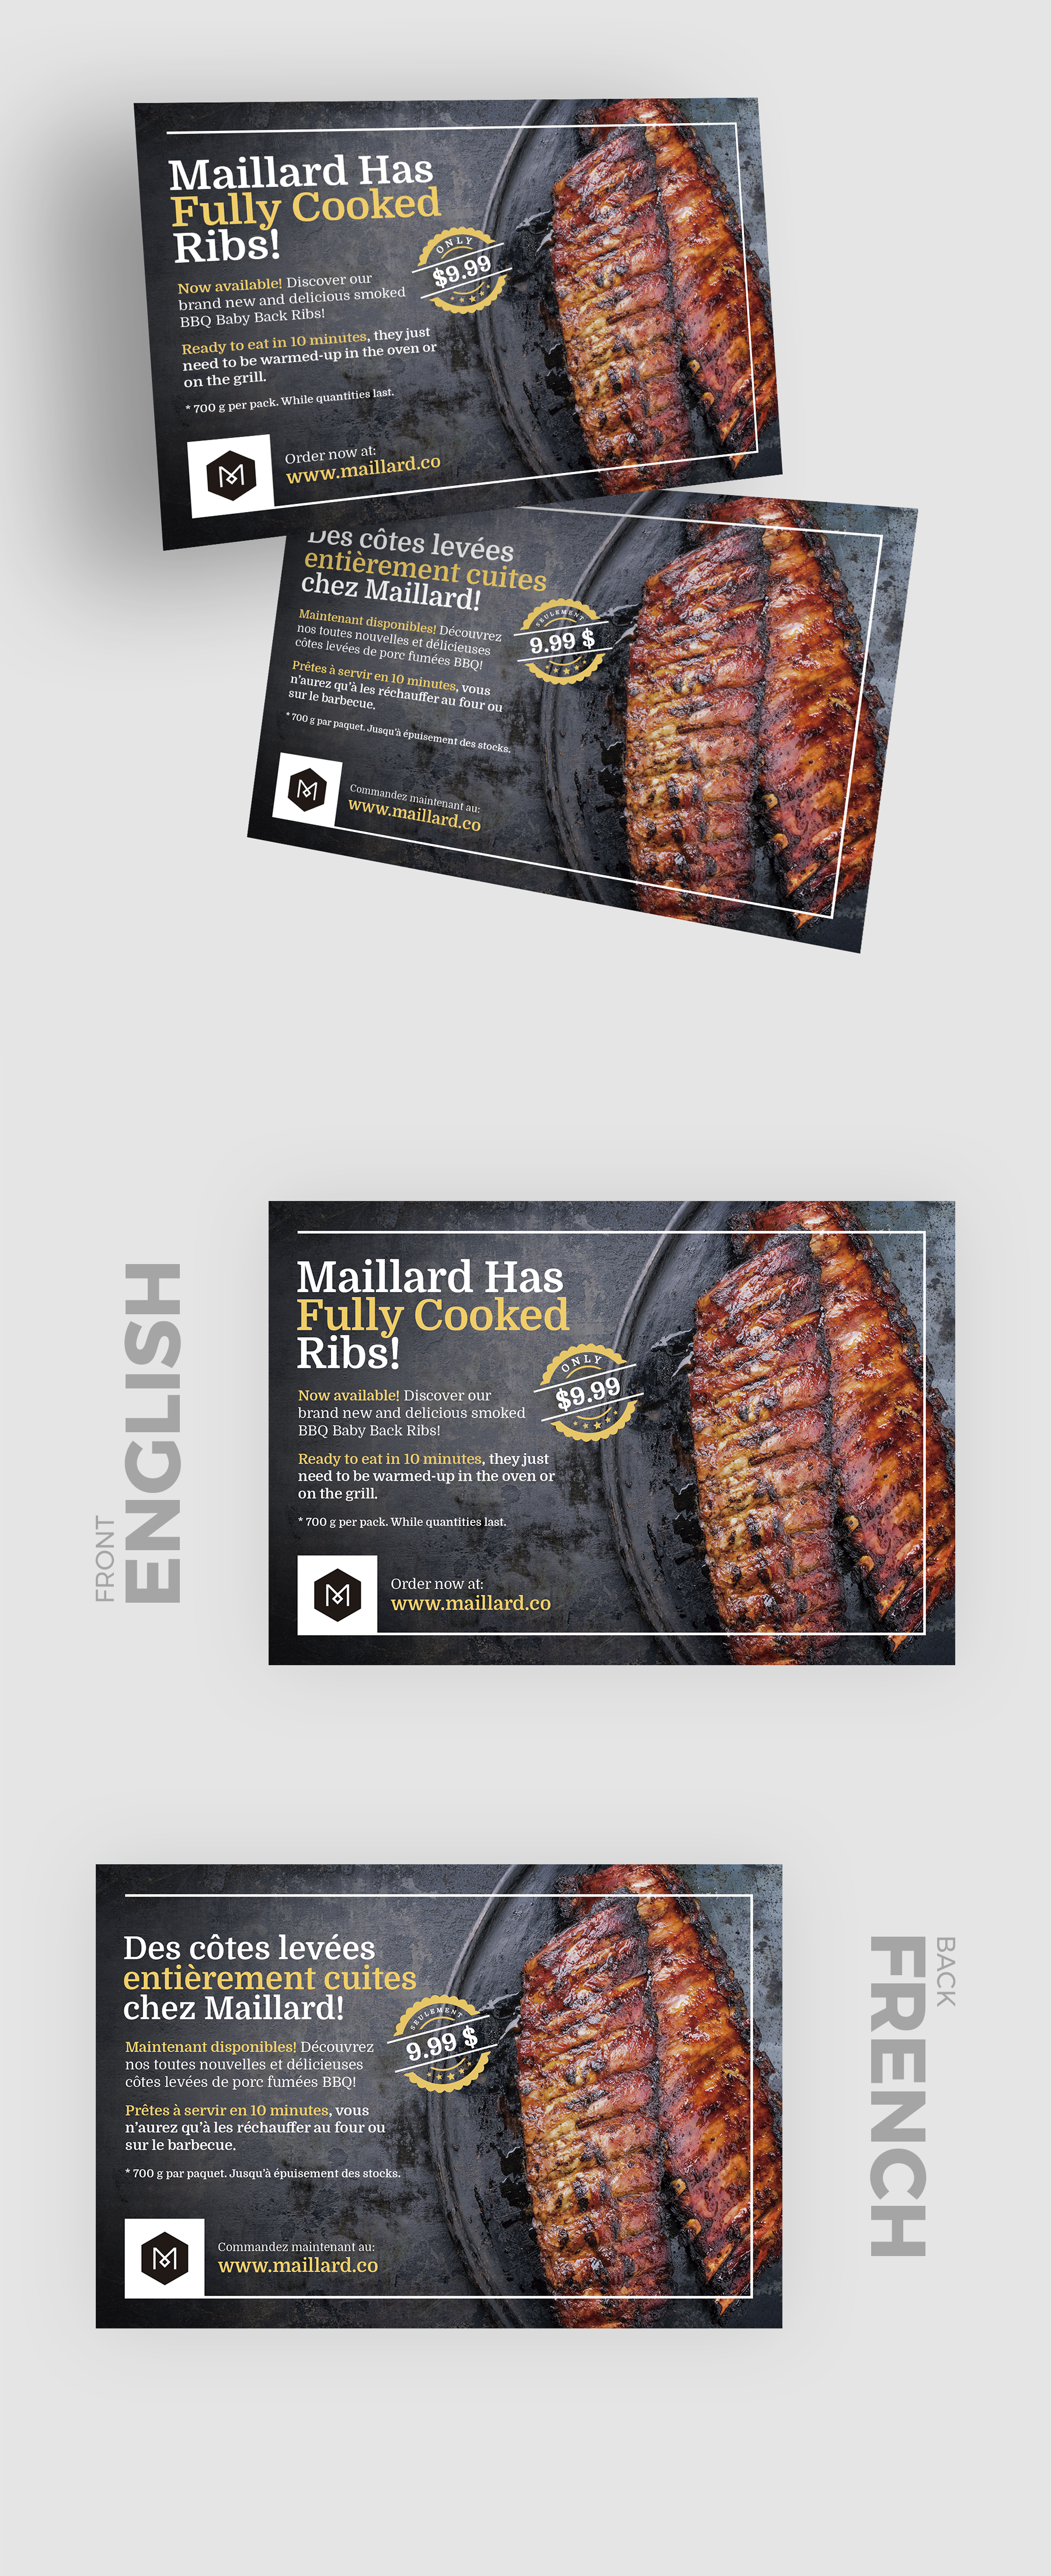 Design a printed insert for a mouth watering new product